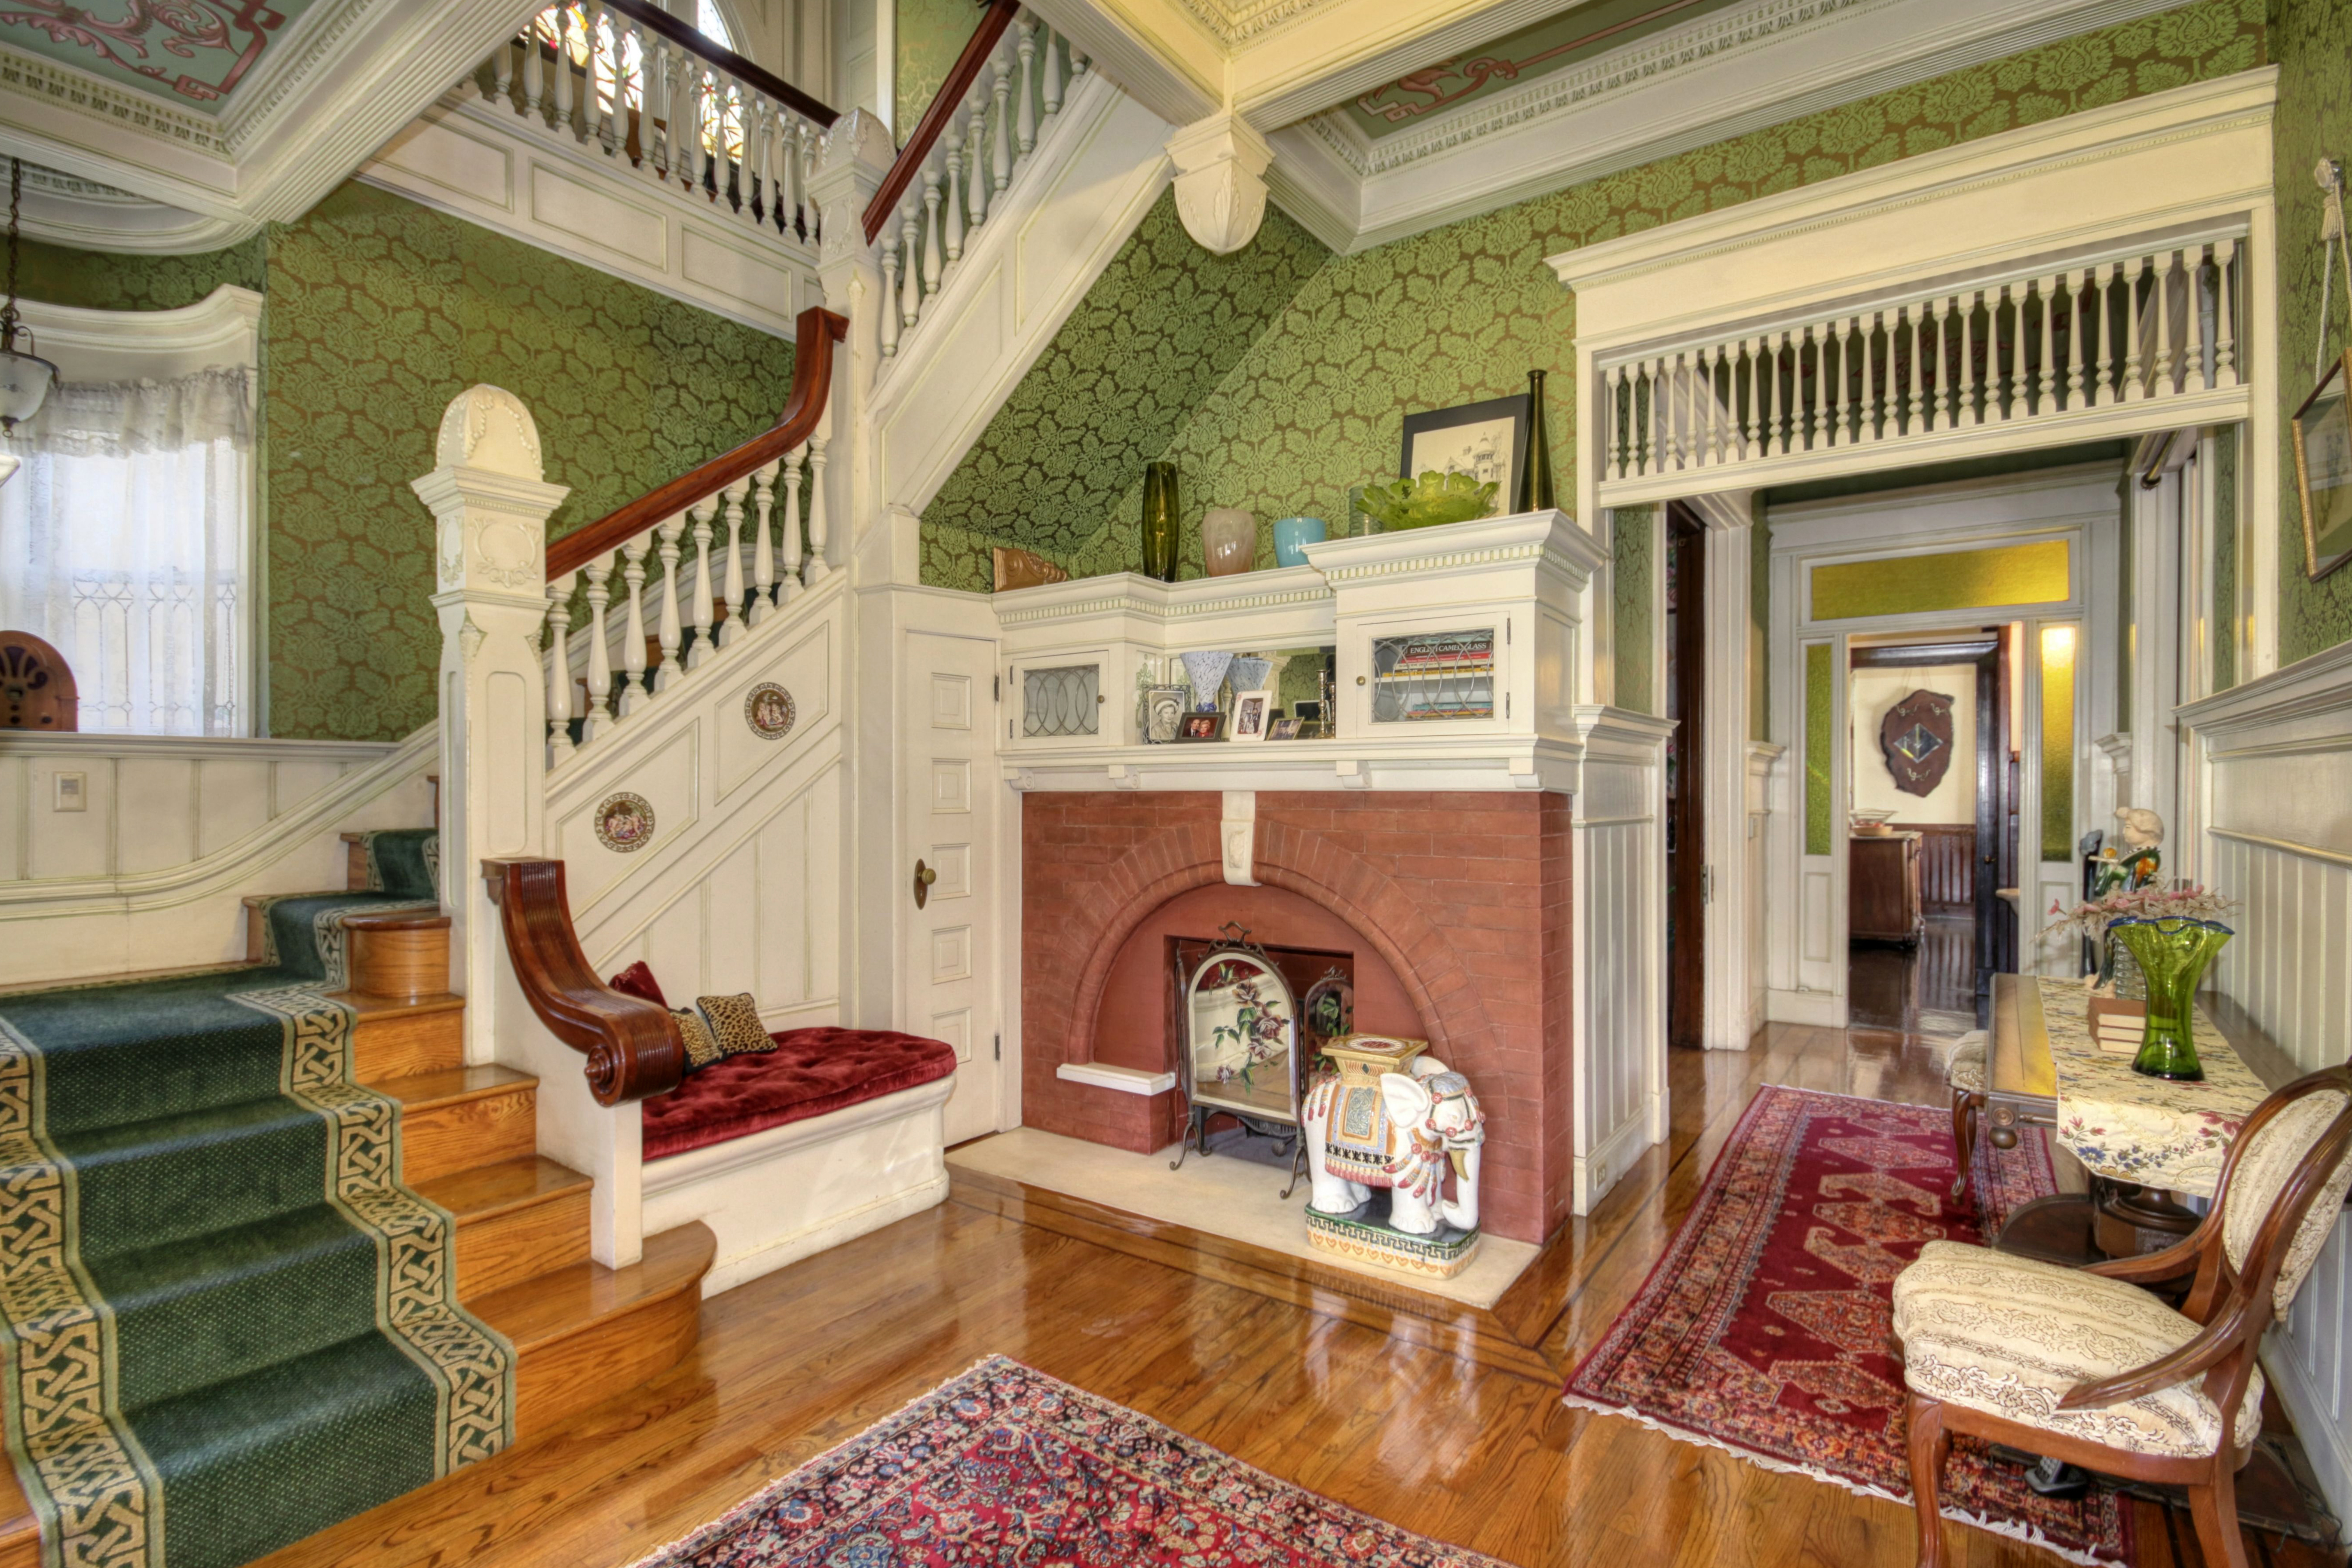 The Old Mason Smith Mansion Includes Hardwood Floors A Decorative Staircase Three Fireplaces